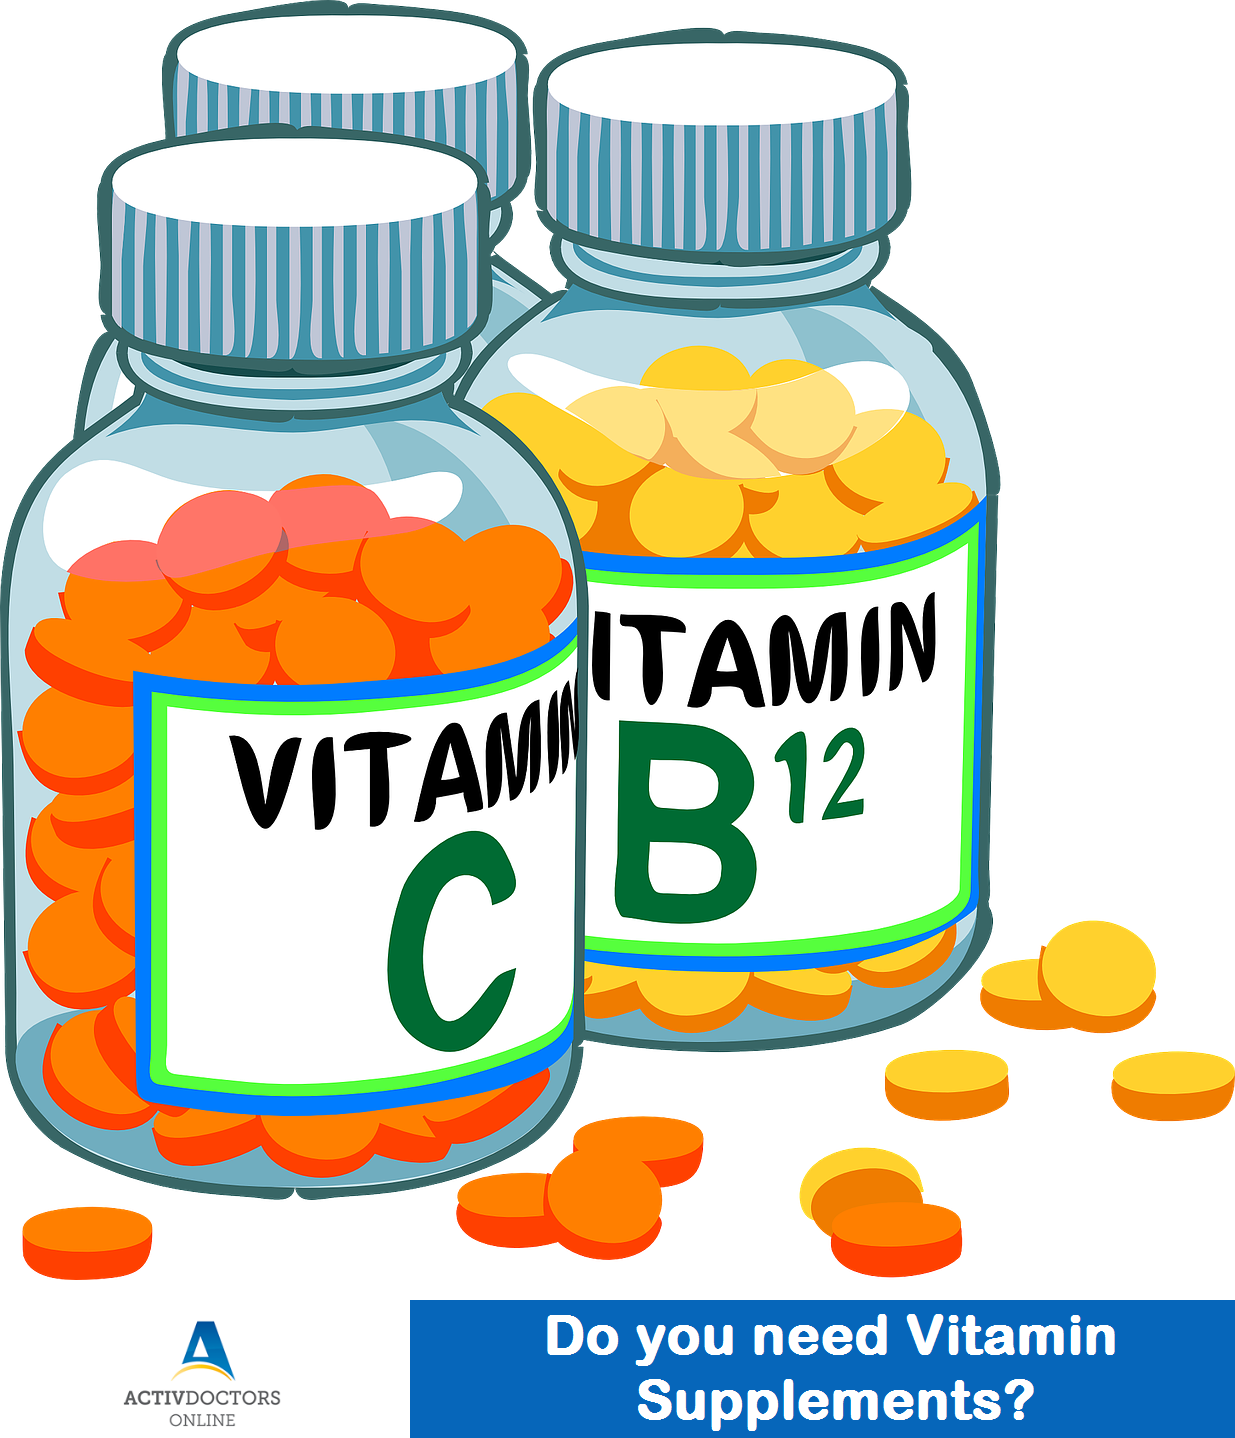 Do you need Vitamin Supplements?